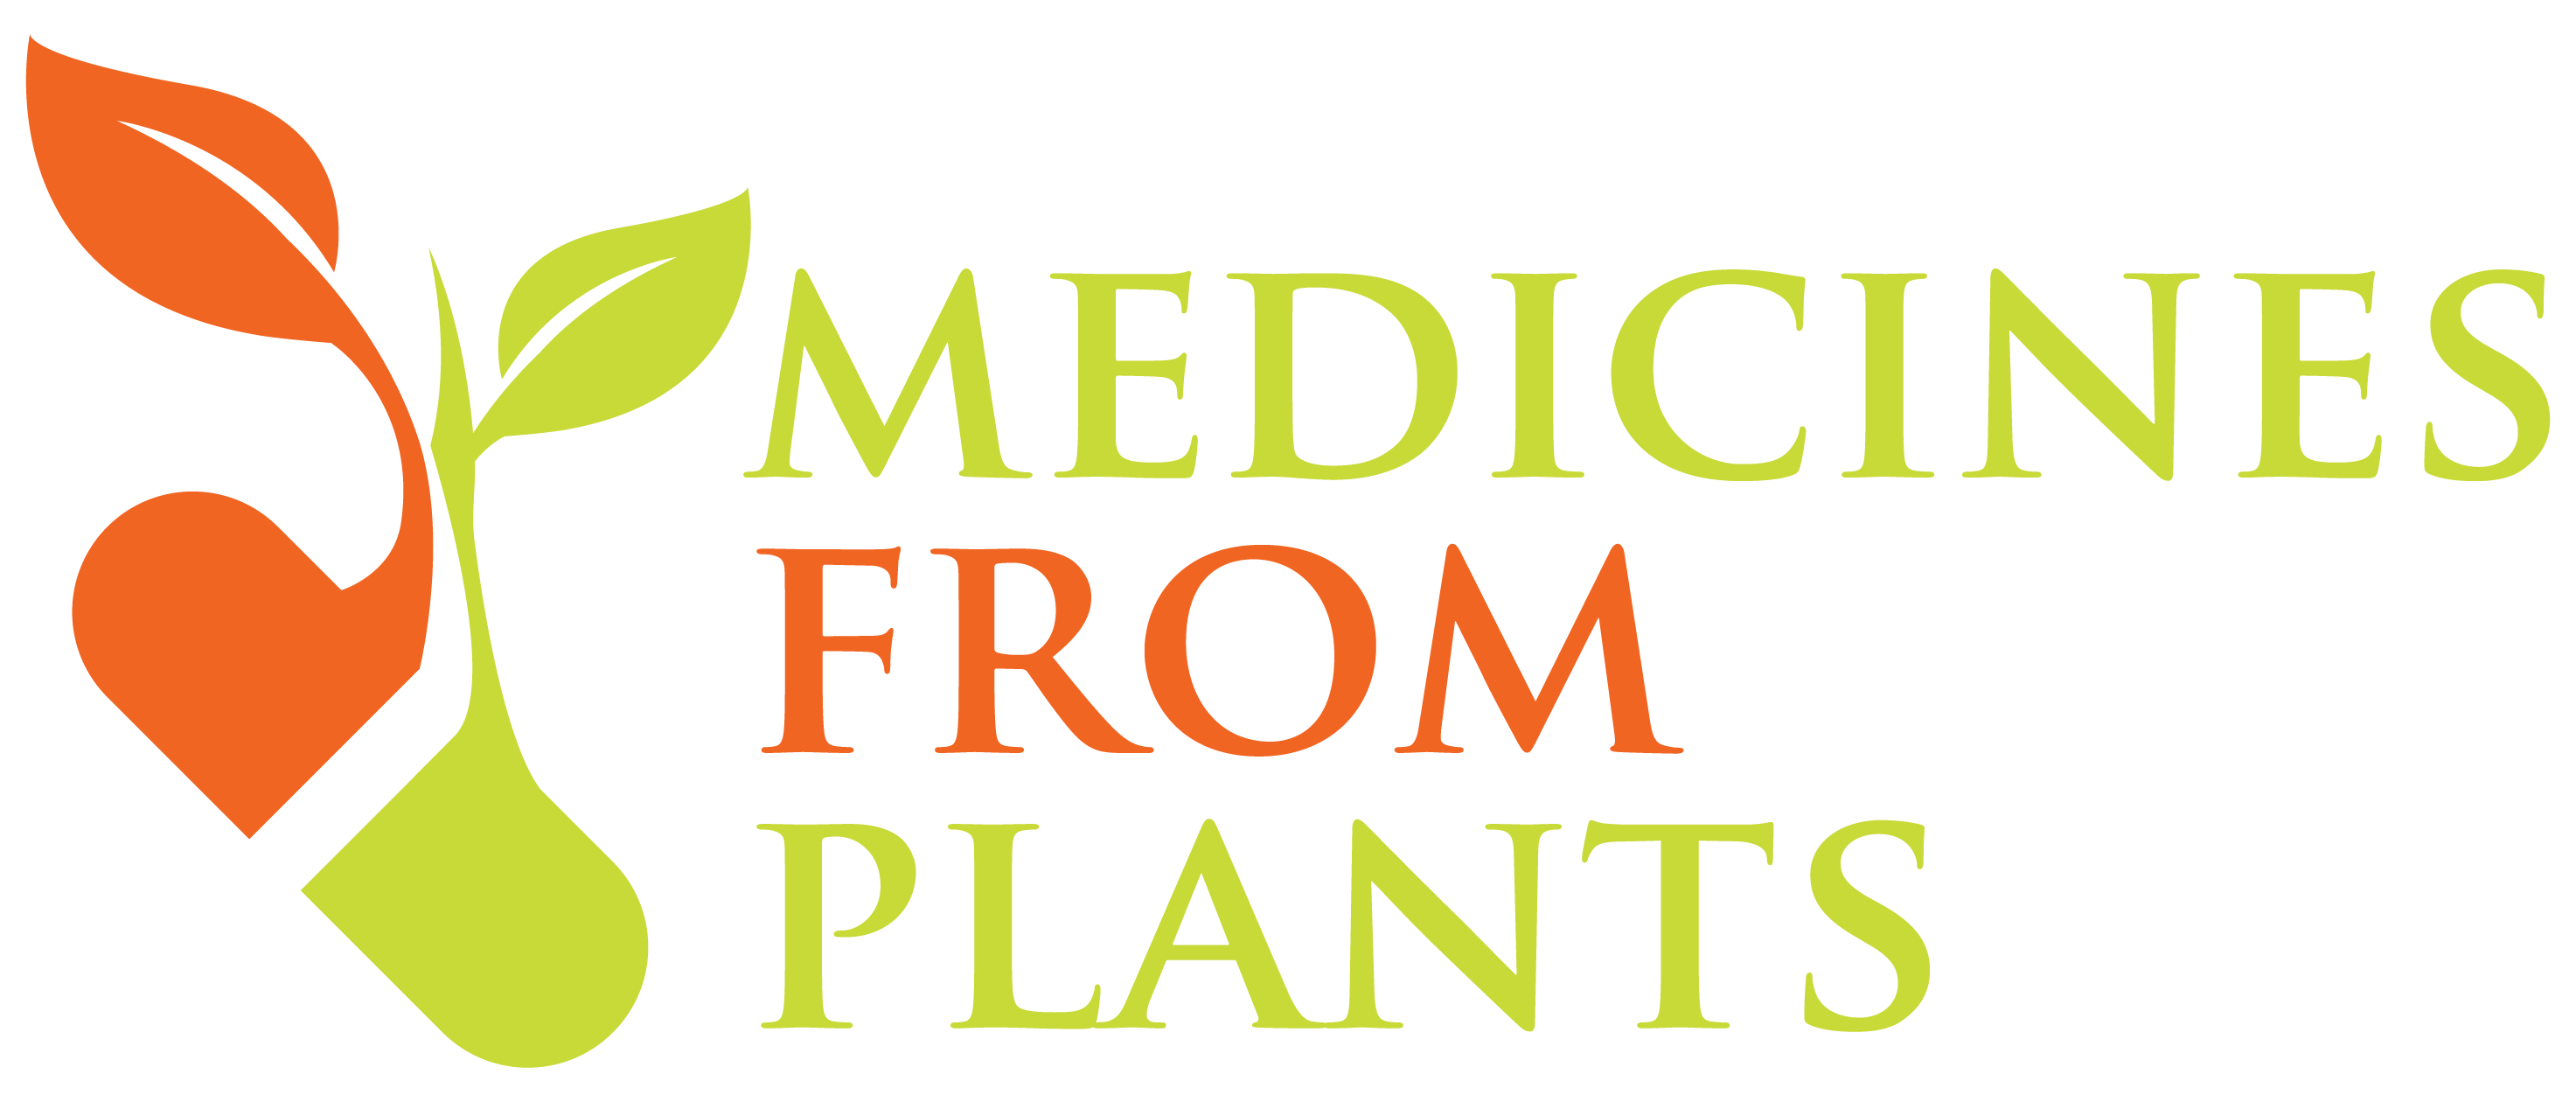 Medicines from Plants